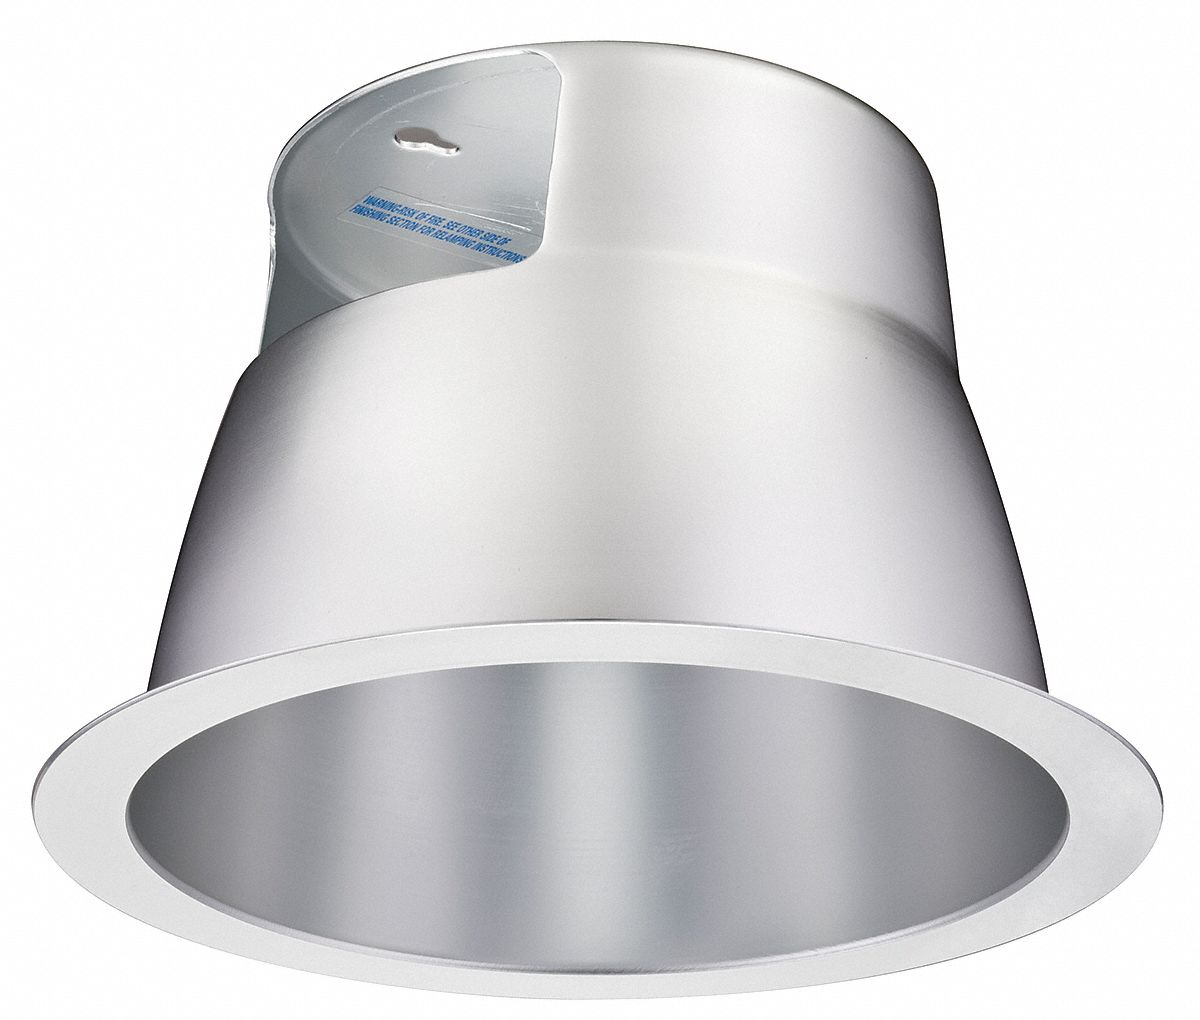 8 in silver baffle style fluorescent recessed downlight trim aluminum reflector